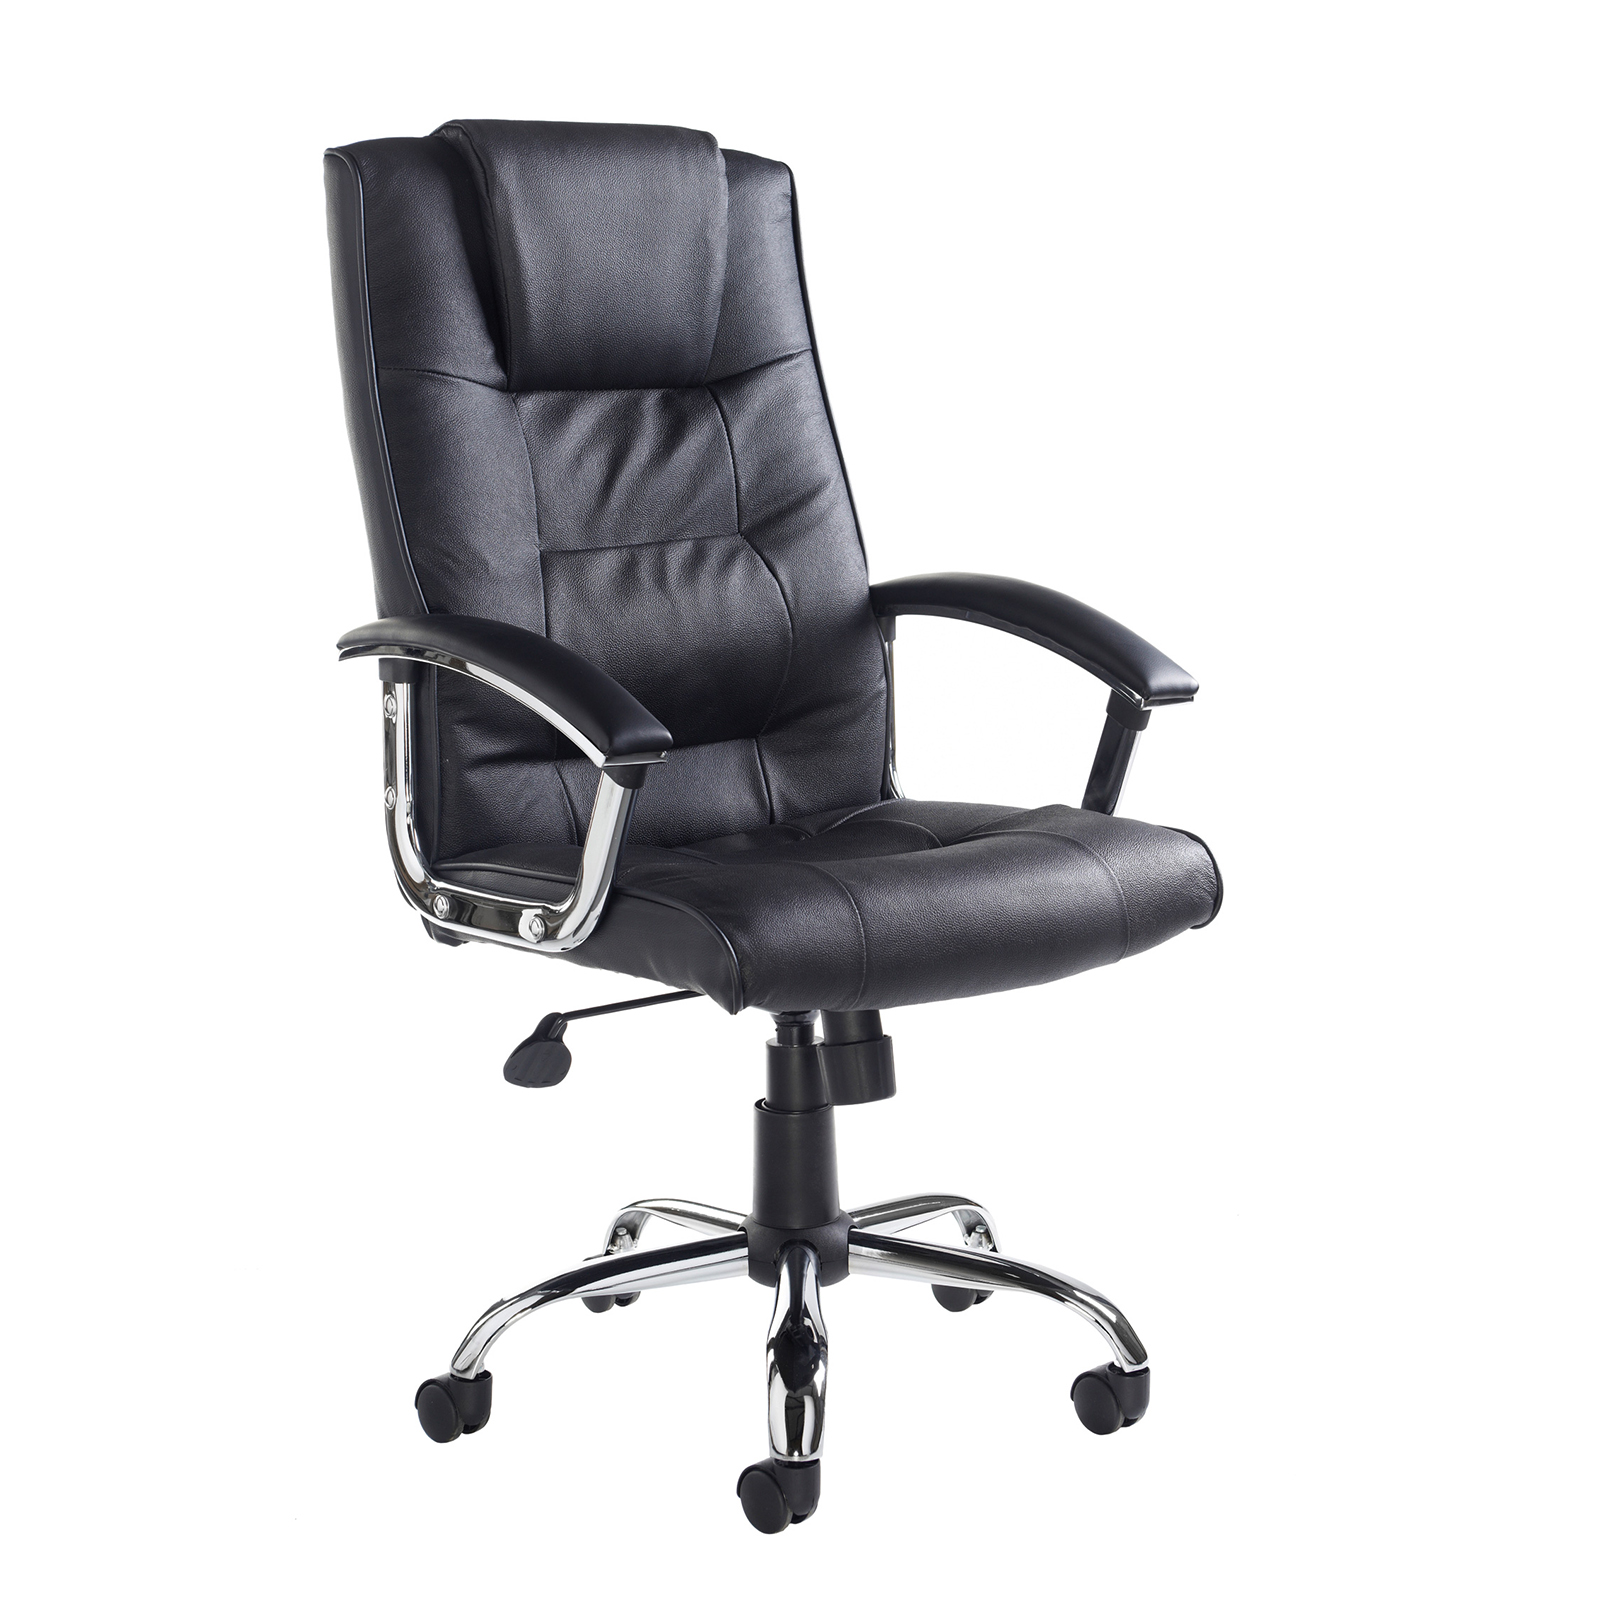 Executive Chairs Somerset high back managers chair - black leather faced